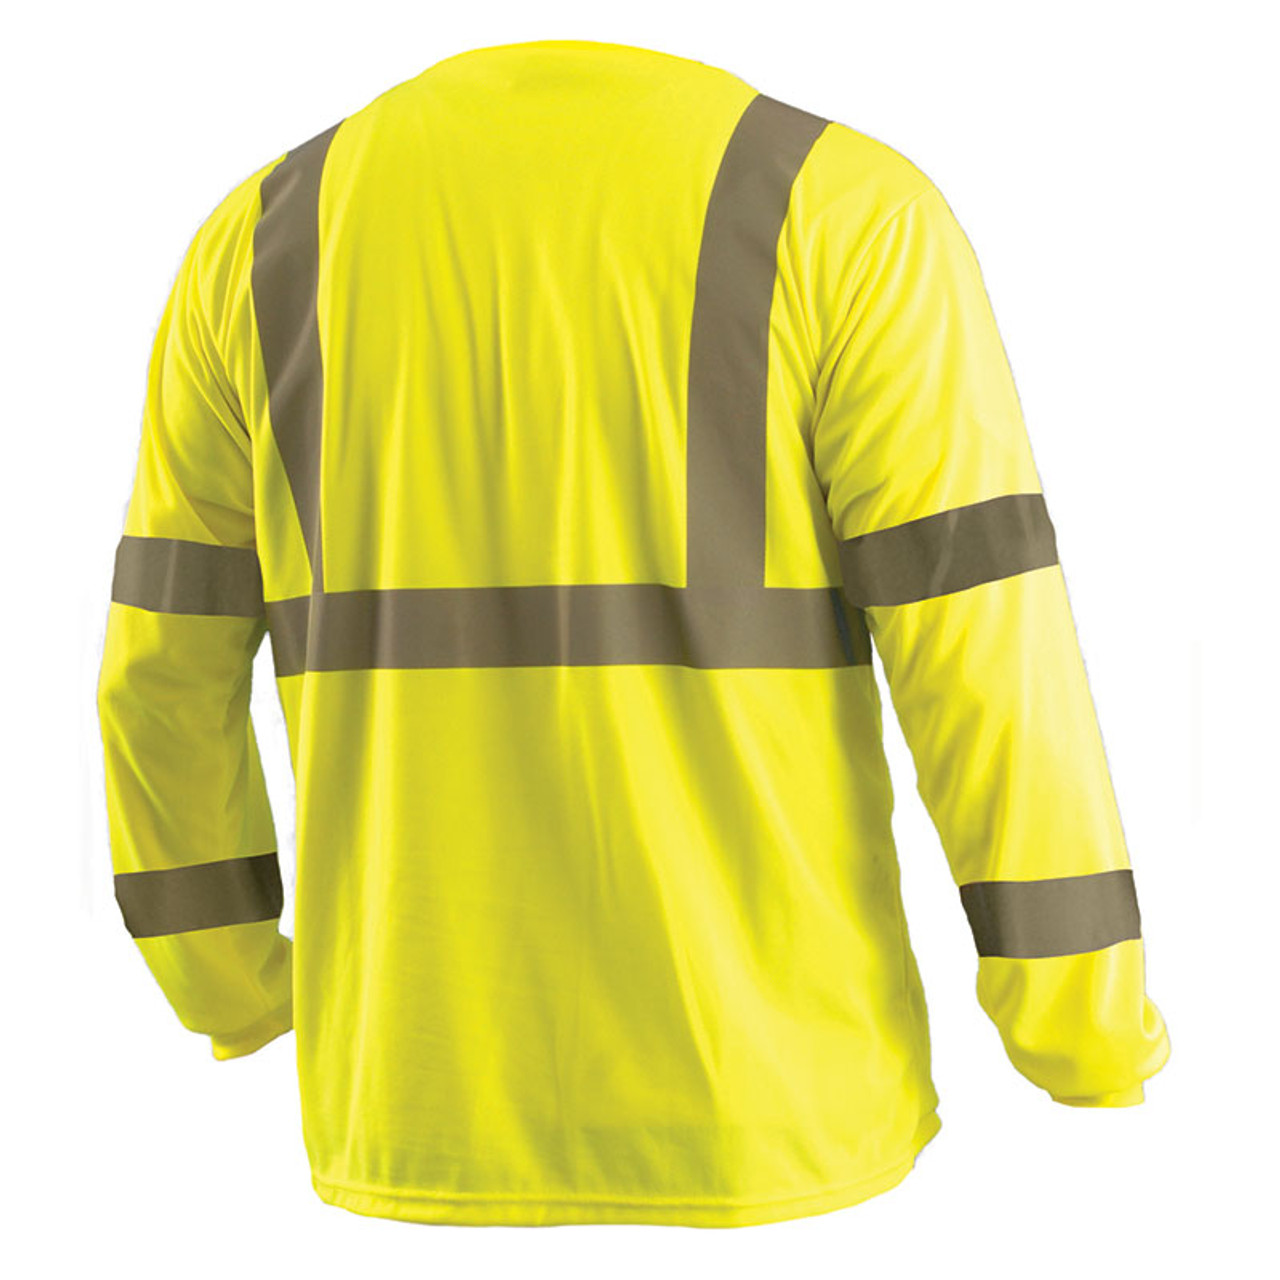 6XL, Hi Vis Yellow Lightweight Moisture Wicking Construction Shirts for Men /& Women Non-ANSI Brite Safety Style 213 Hi Vis Long-Sleeve Safety Shirt with Pocket